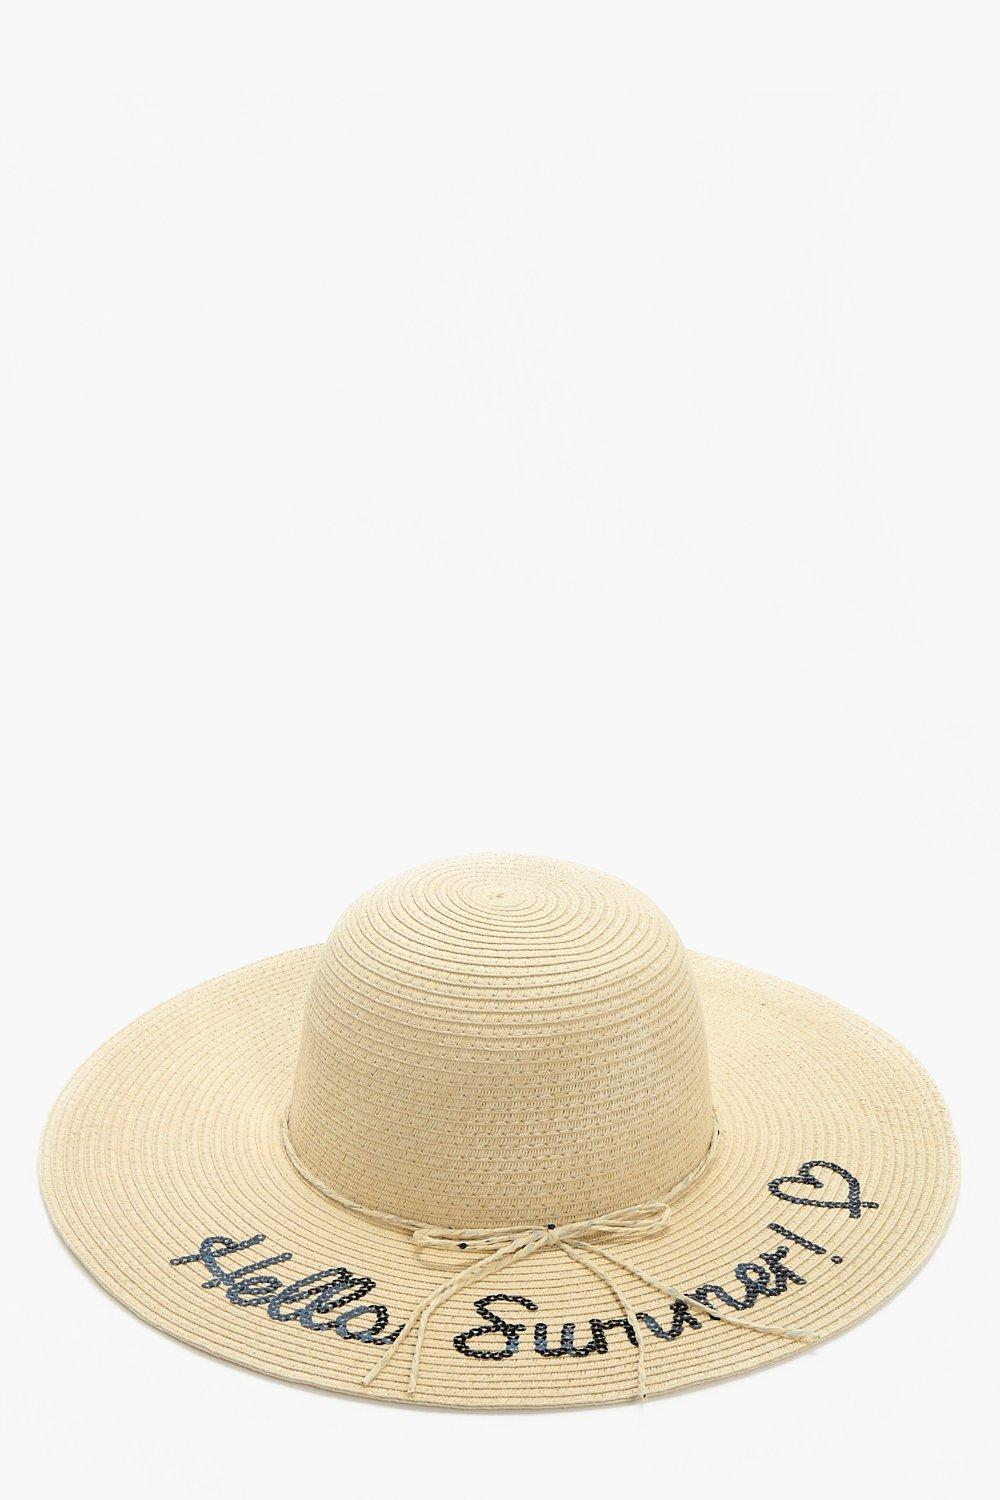 Sequin Slogan Straw Hat - natural - Macy Sequin Sl